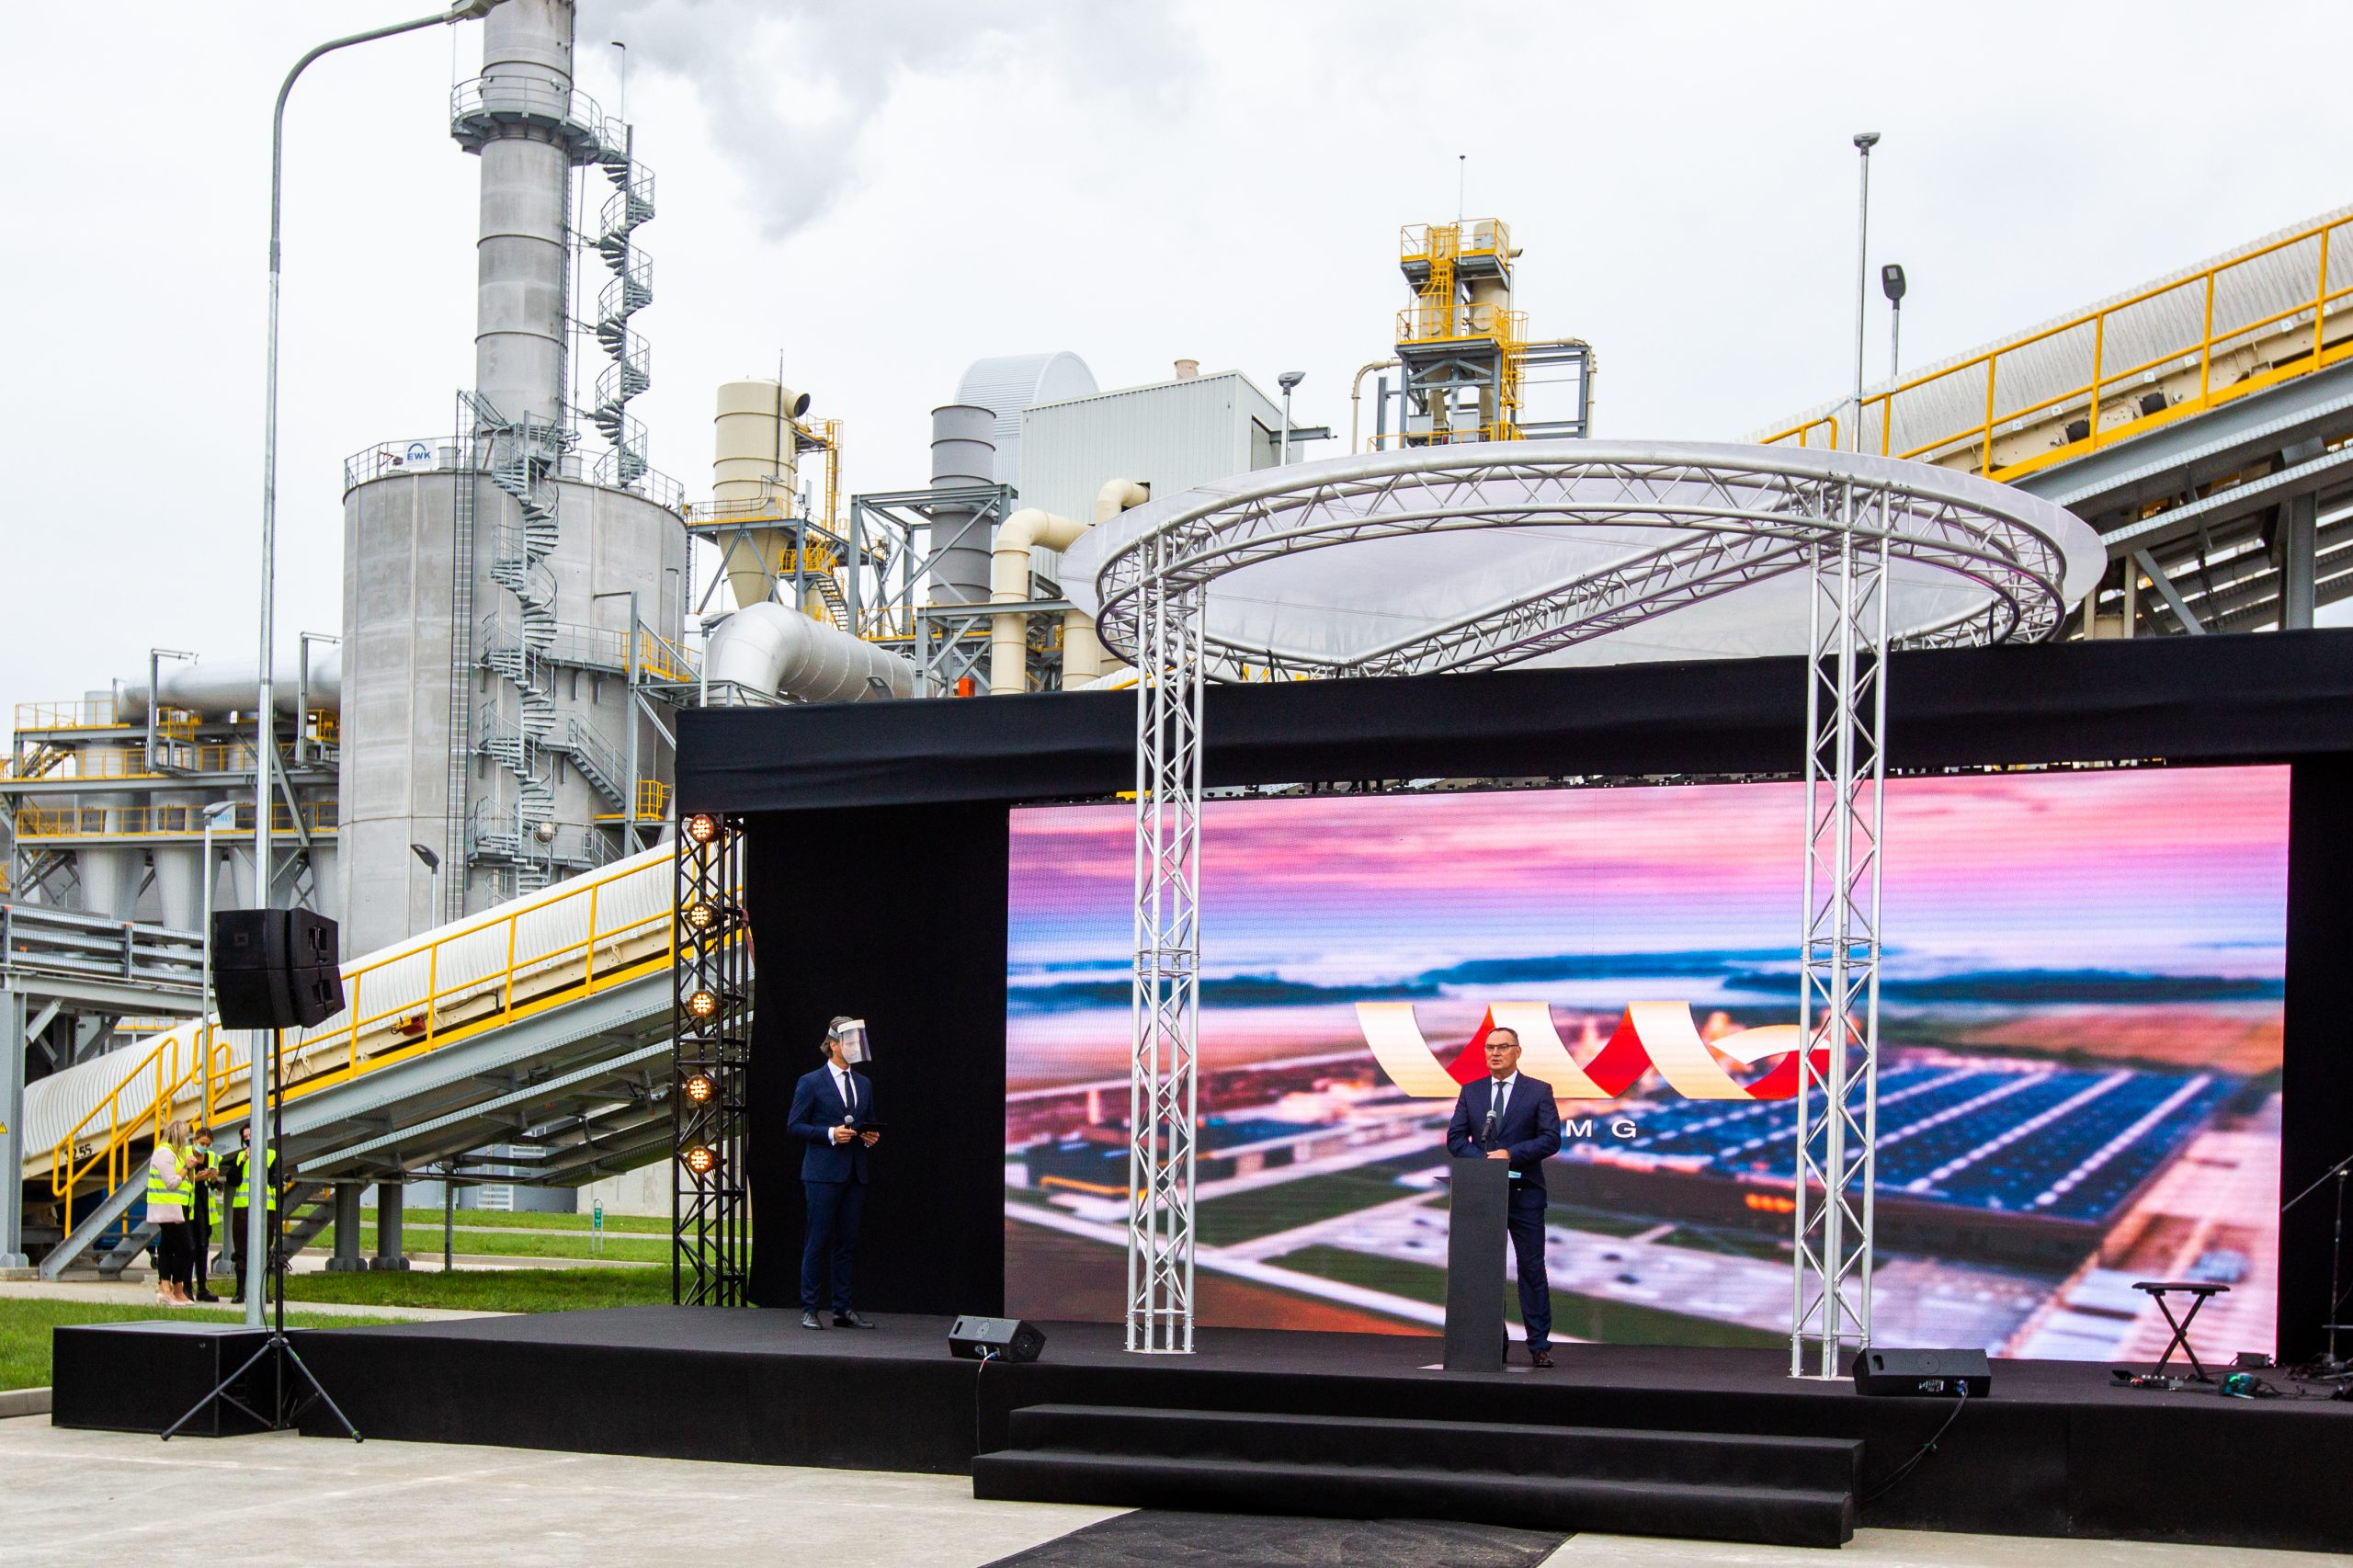 Milestone for Klaipedos Mediena (VMG): Grand opening of benchmark plant in Lithuania